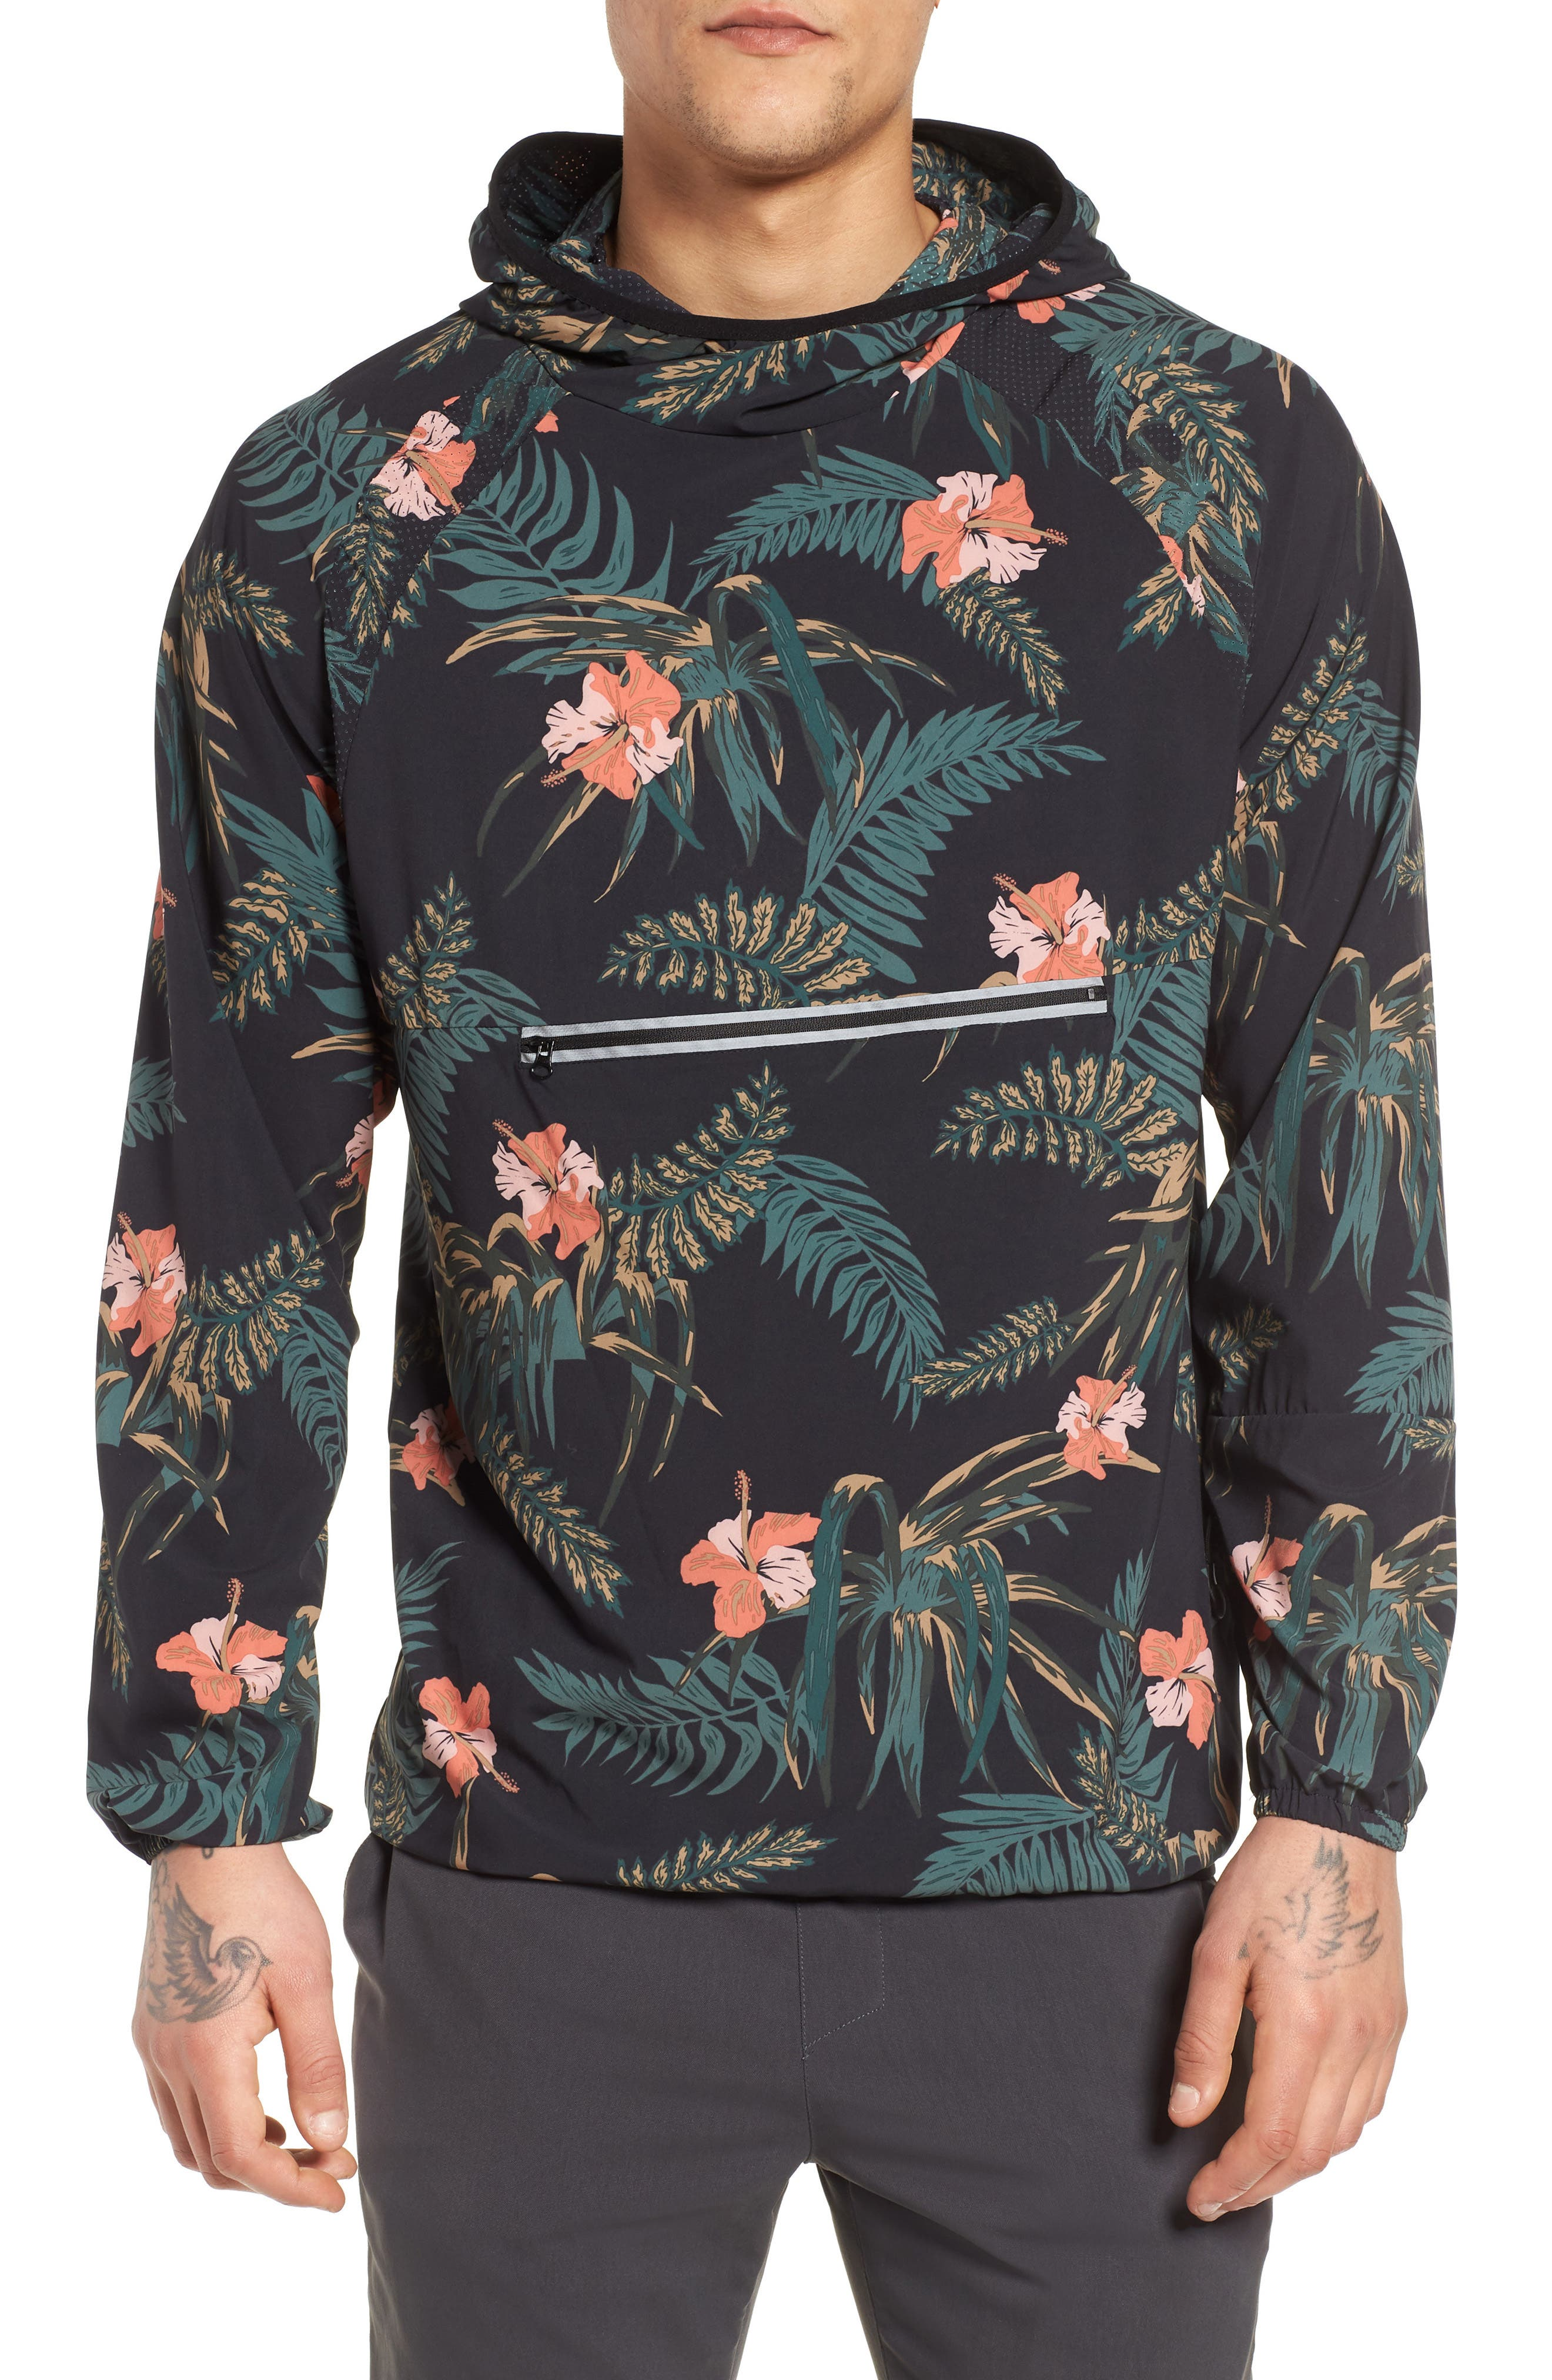 Ignite Pullover,                         Main,                         color, Floral/ Multi